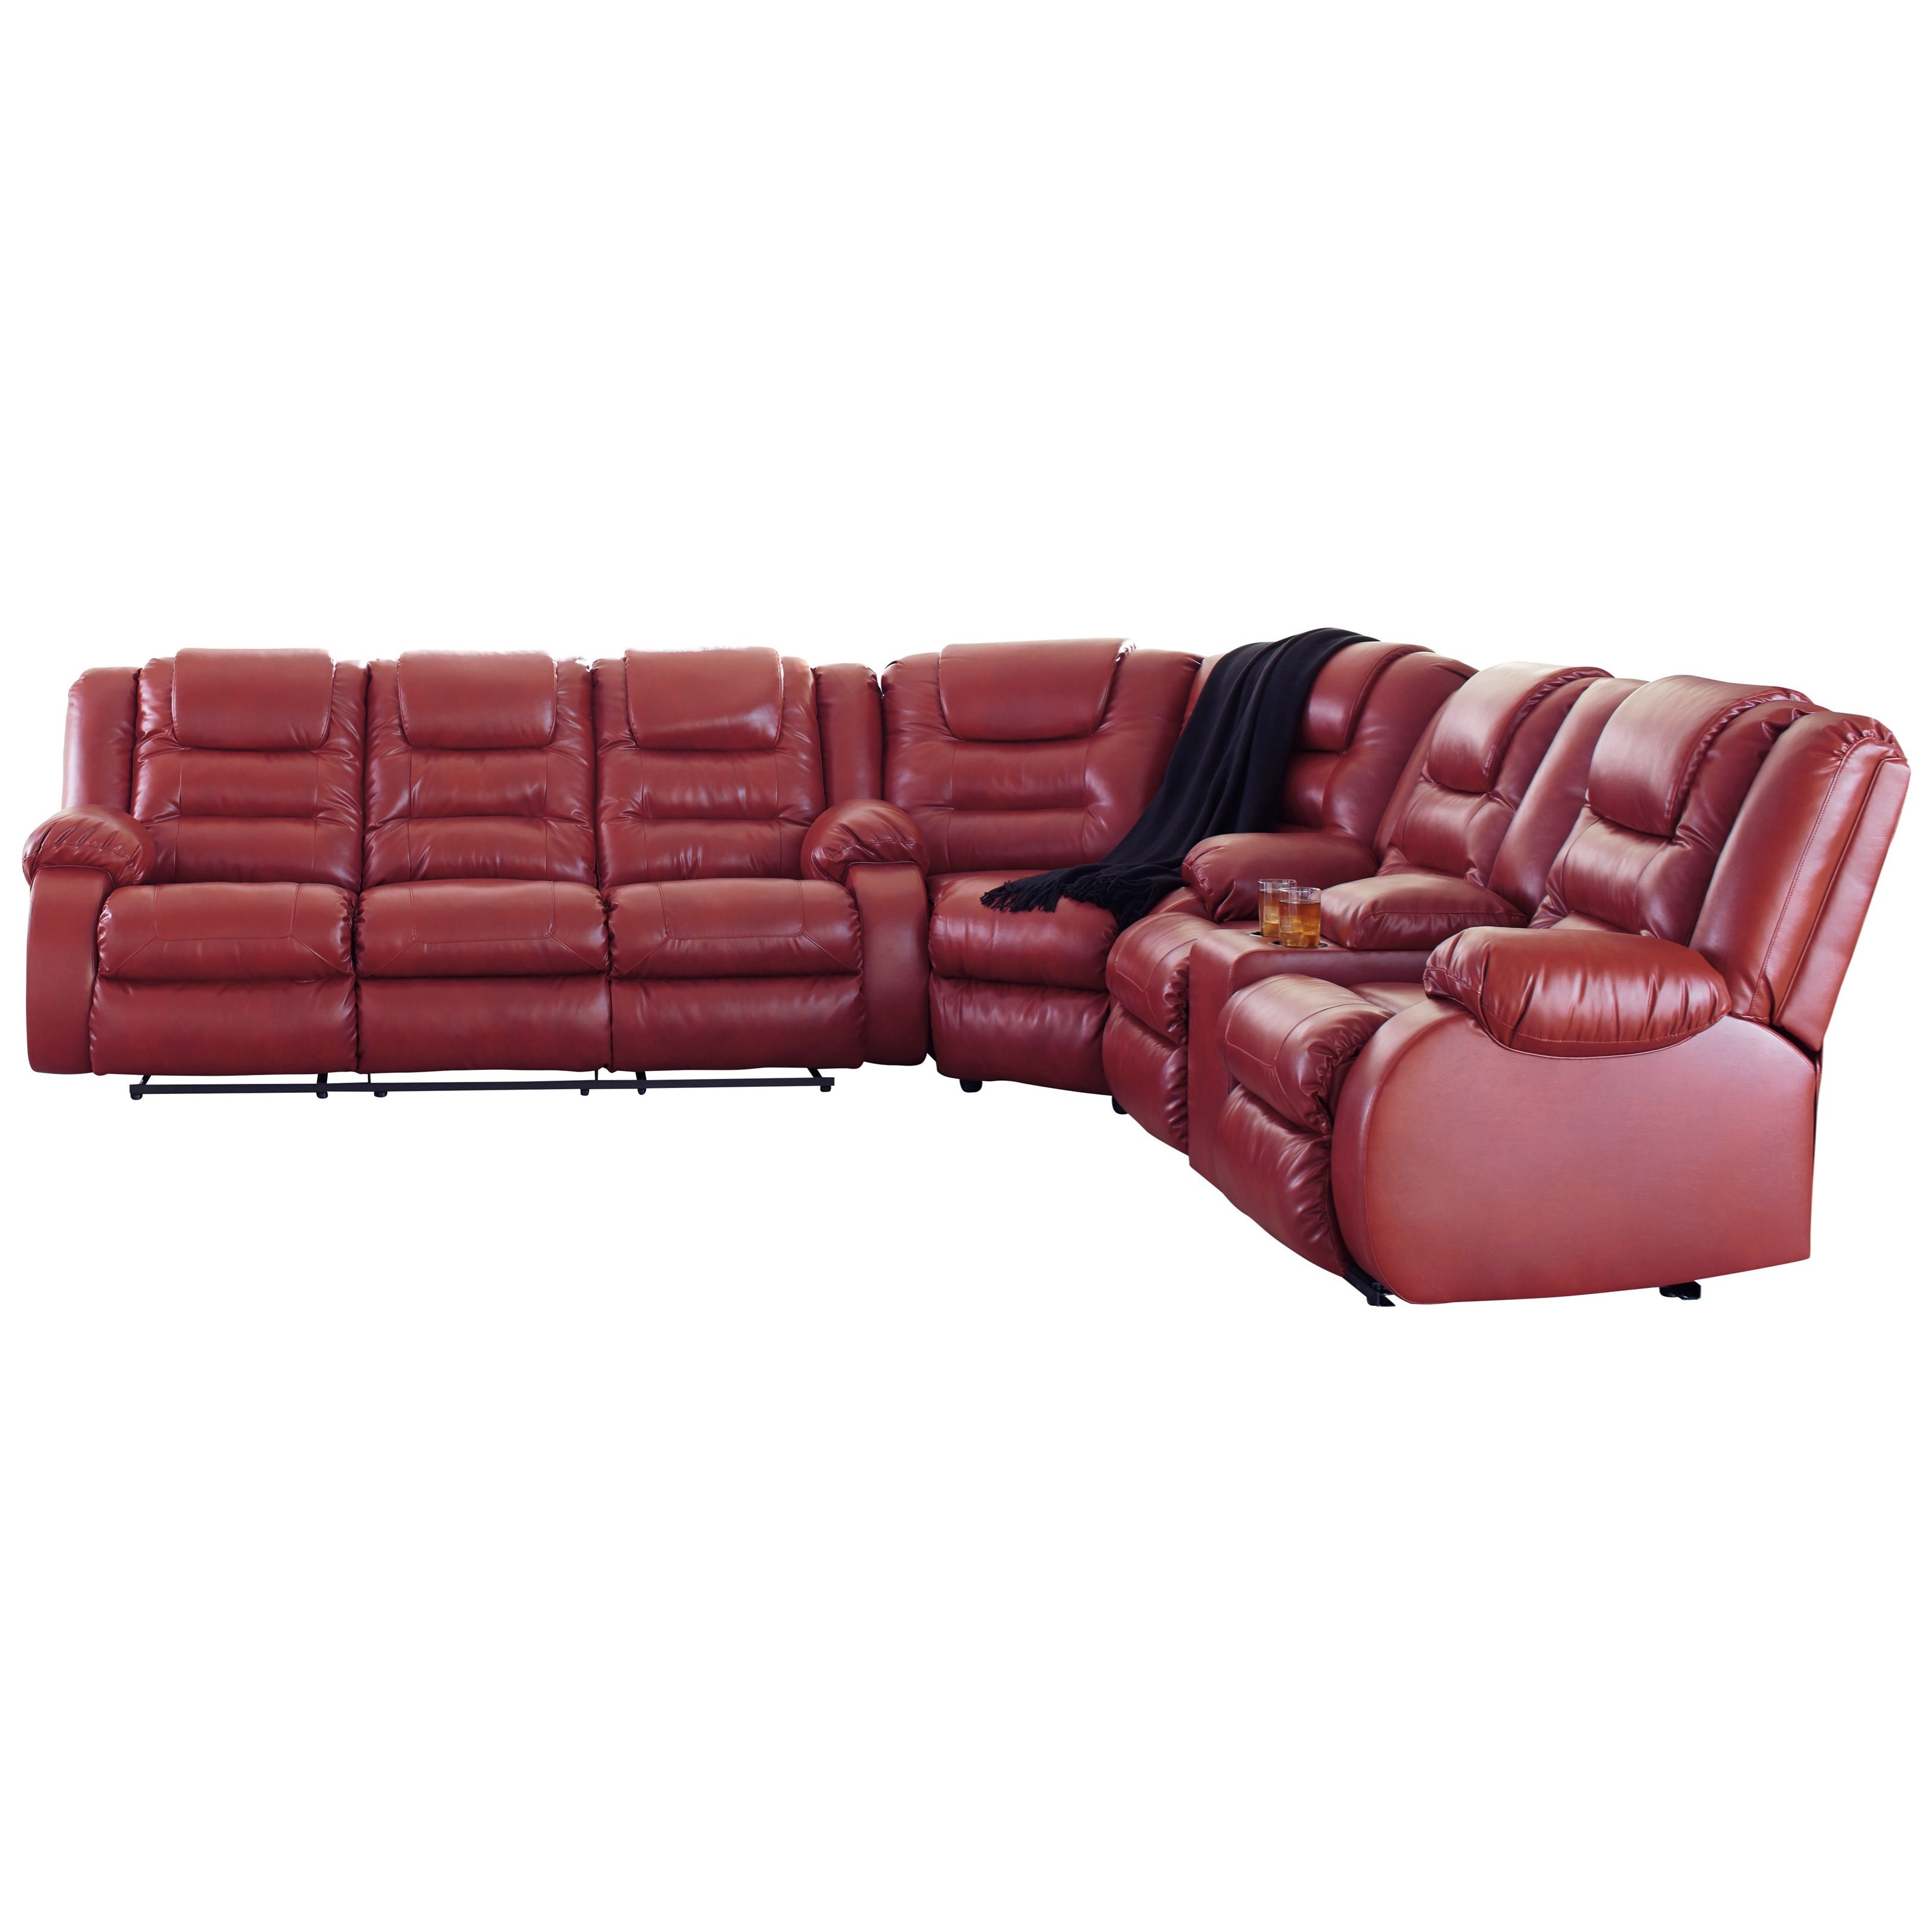 Vacherie Reclining Sectional Sofa by Ashley (Signature Design) at Johnny Janosik